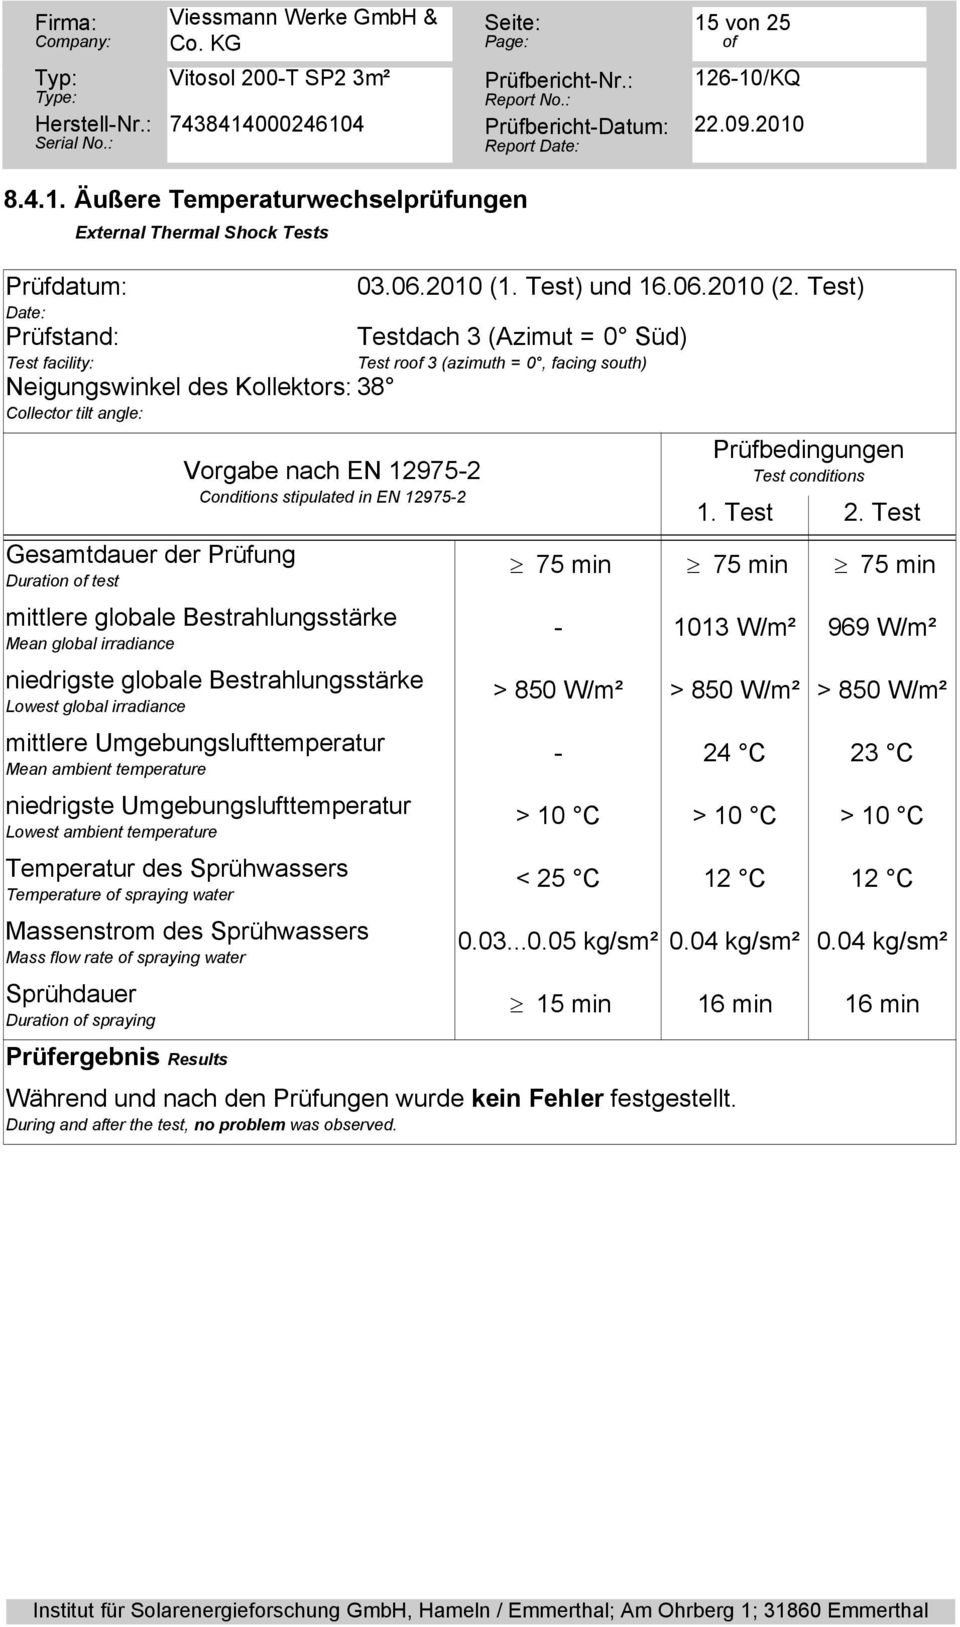 mittlere Umgebungslufttemperatur Mean ambient temperature niedrigste Umgebungslufttemperatur Lowest ambient temperature Temperatur des Sprühwassers Temperature spraying water Massenstrom des